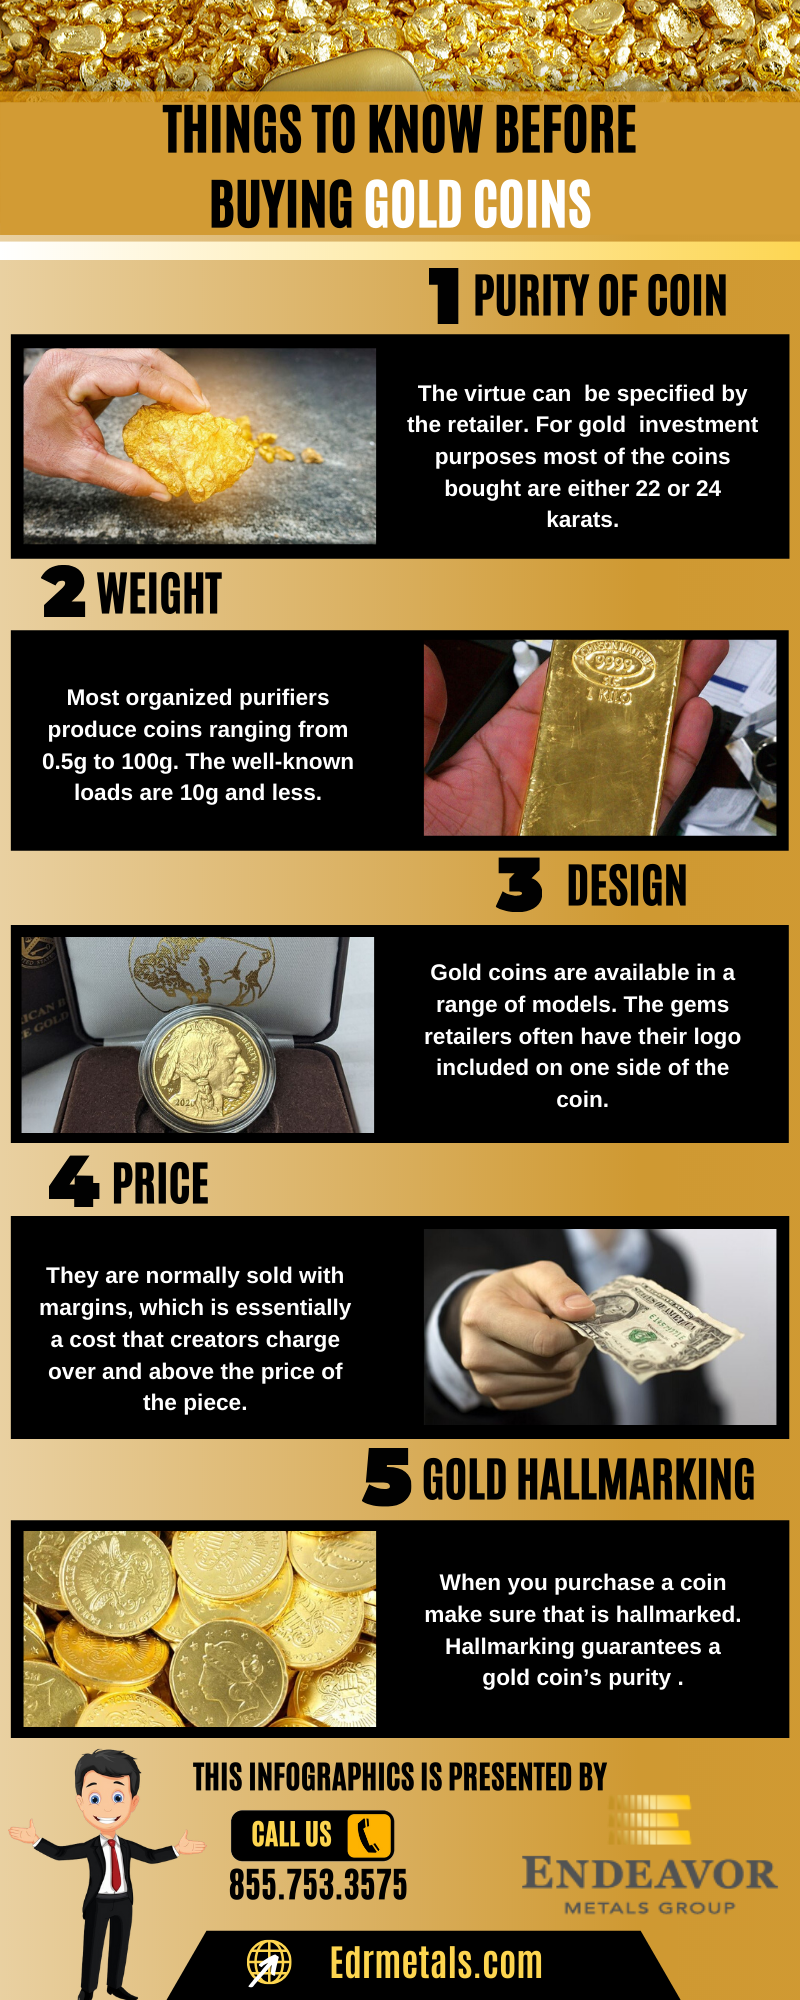 Purchase Precious Metal for Investment